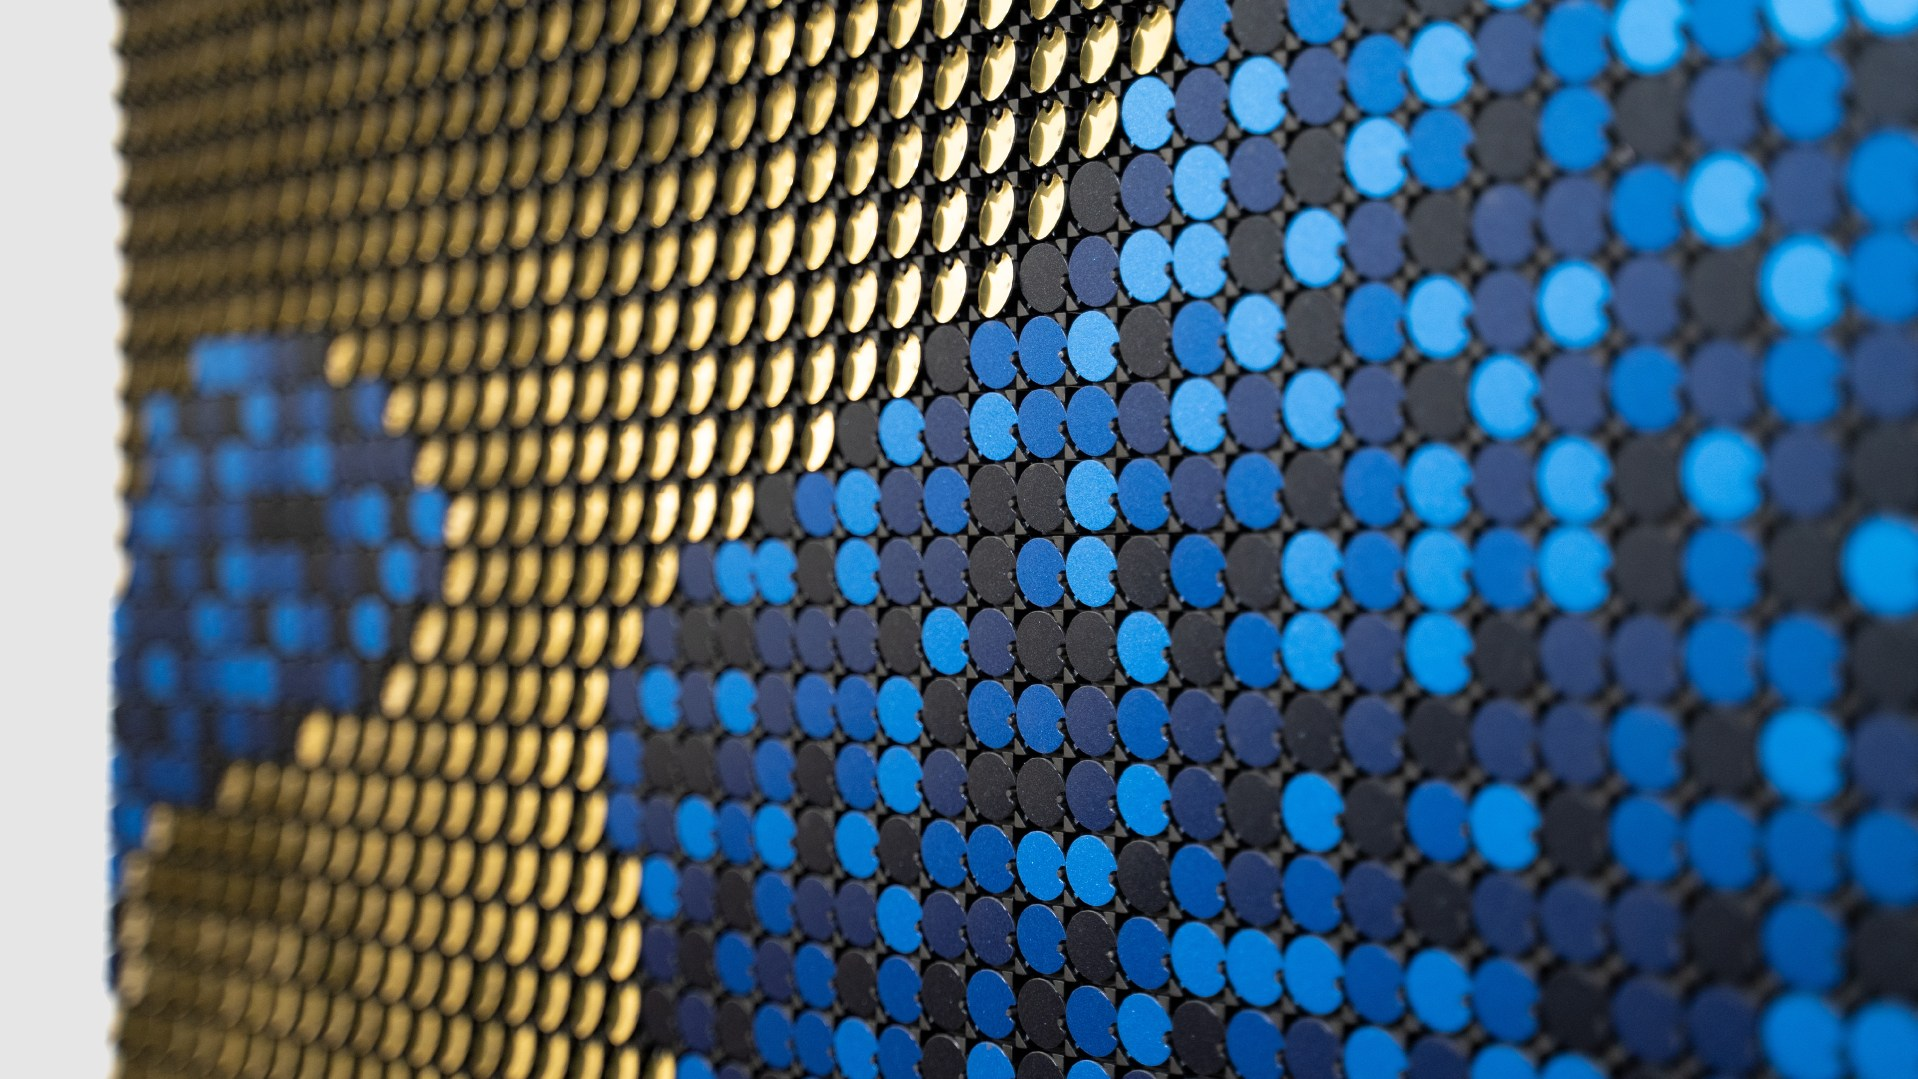 Close up of blue and gold Flip-Discs artwork called